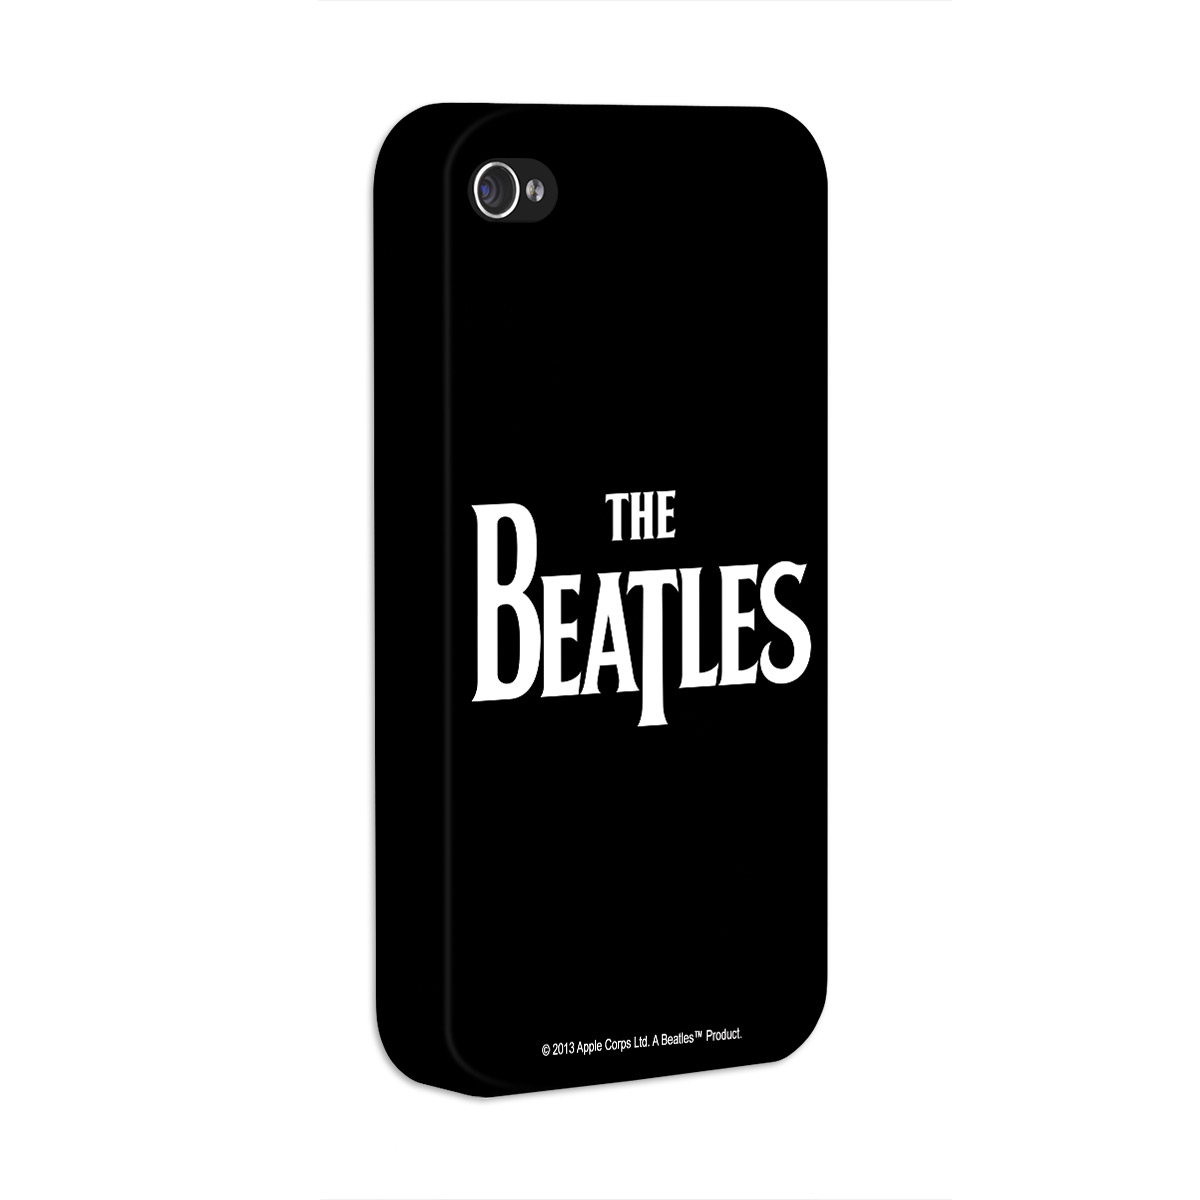 Capa de iPhone 4/4S The Beatles Classic Logo